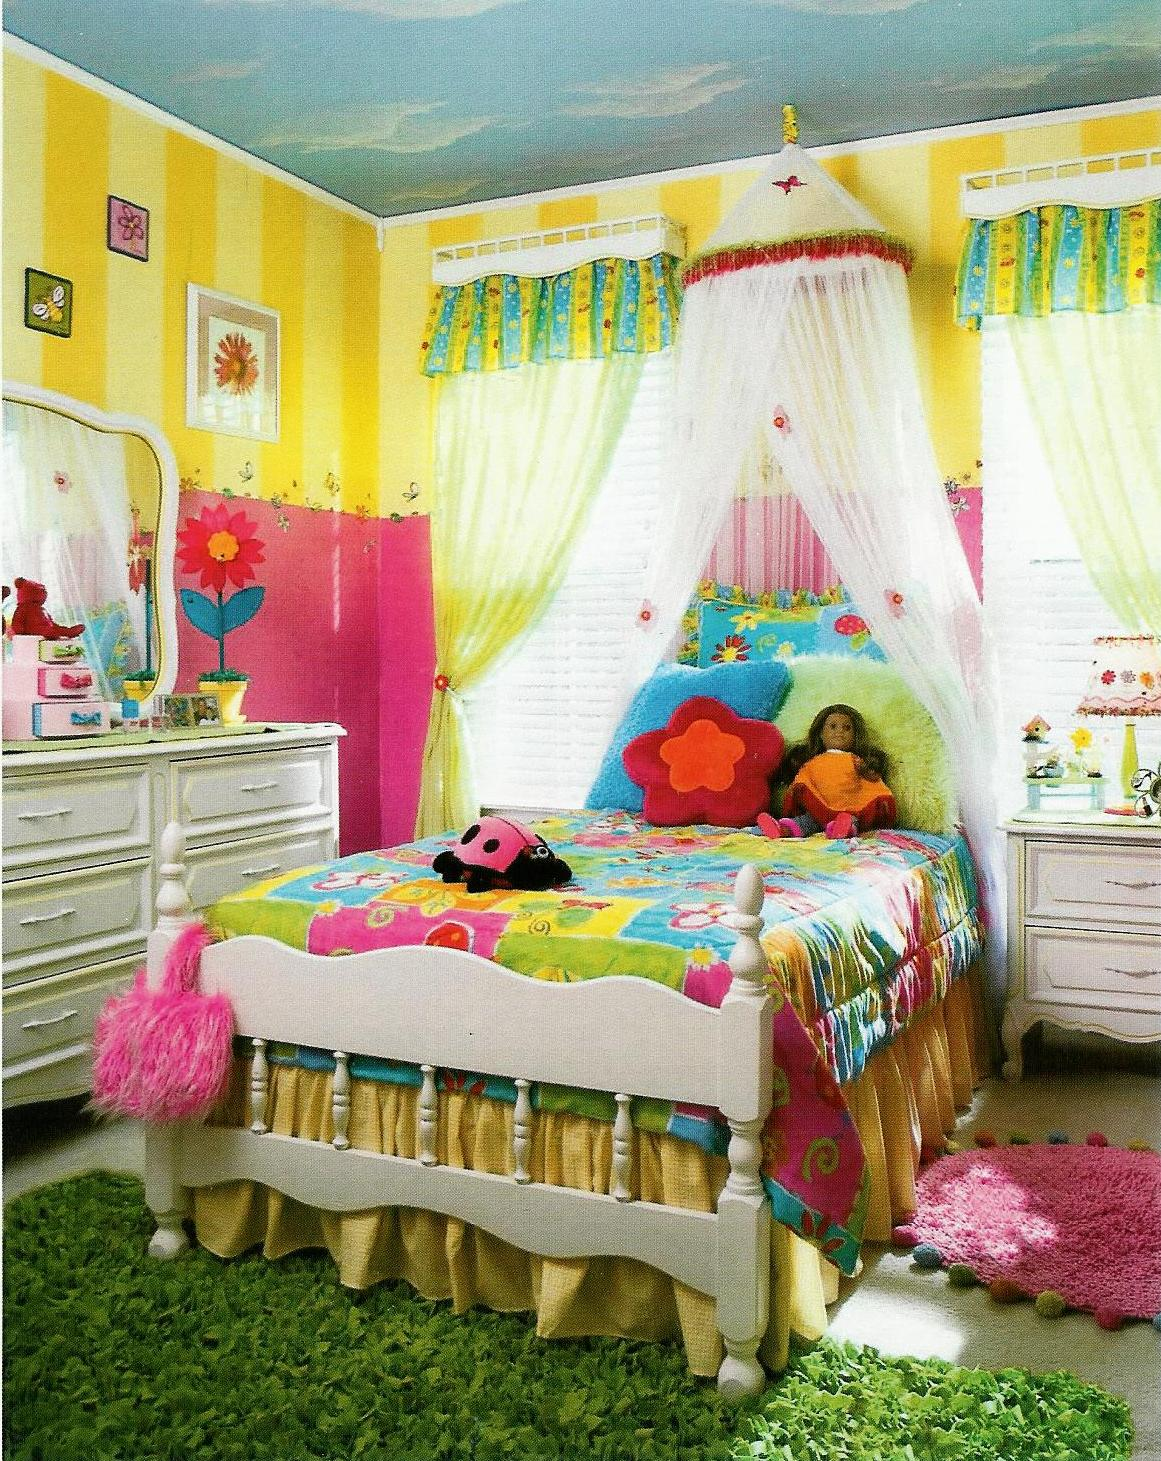 Kids rooms decorations 2017 grasscloth wallpaper for Fun room decor